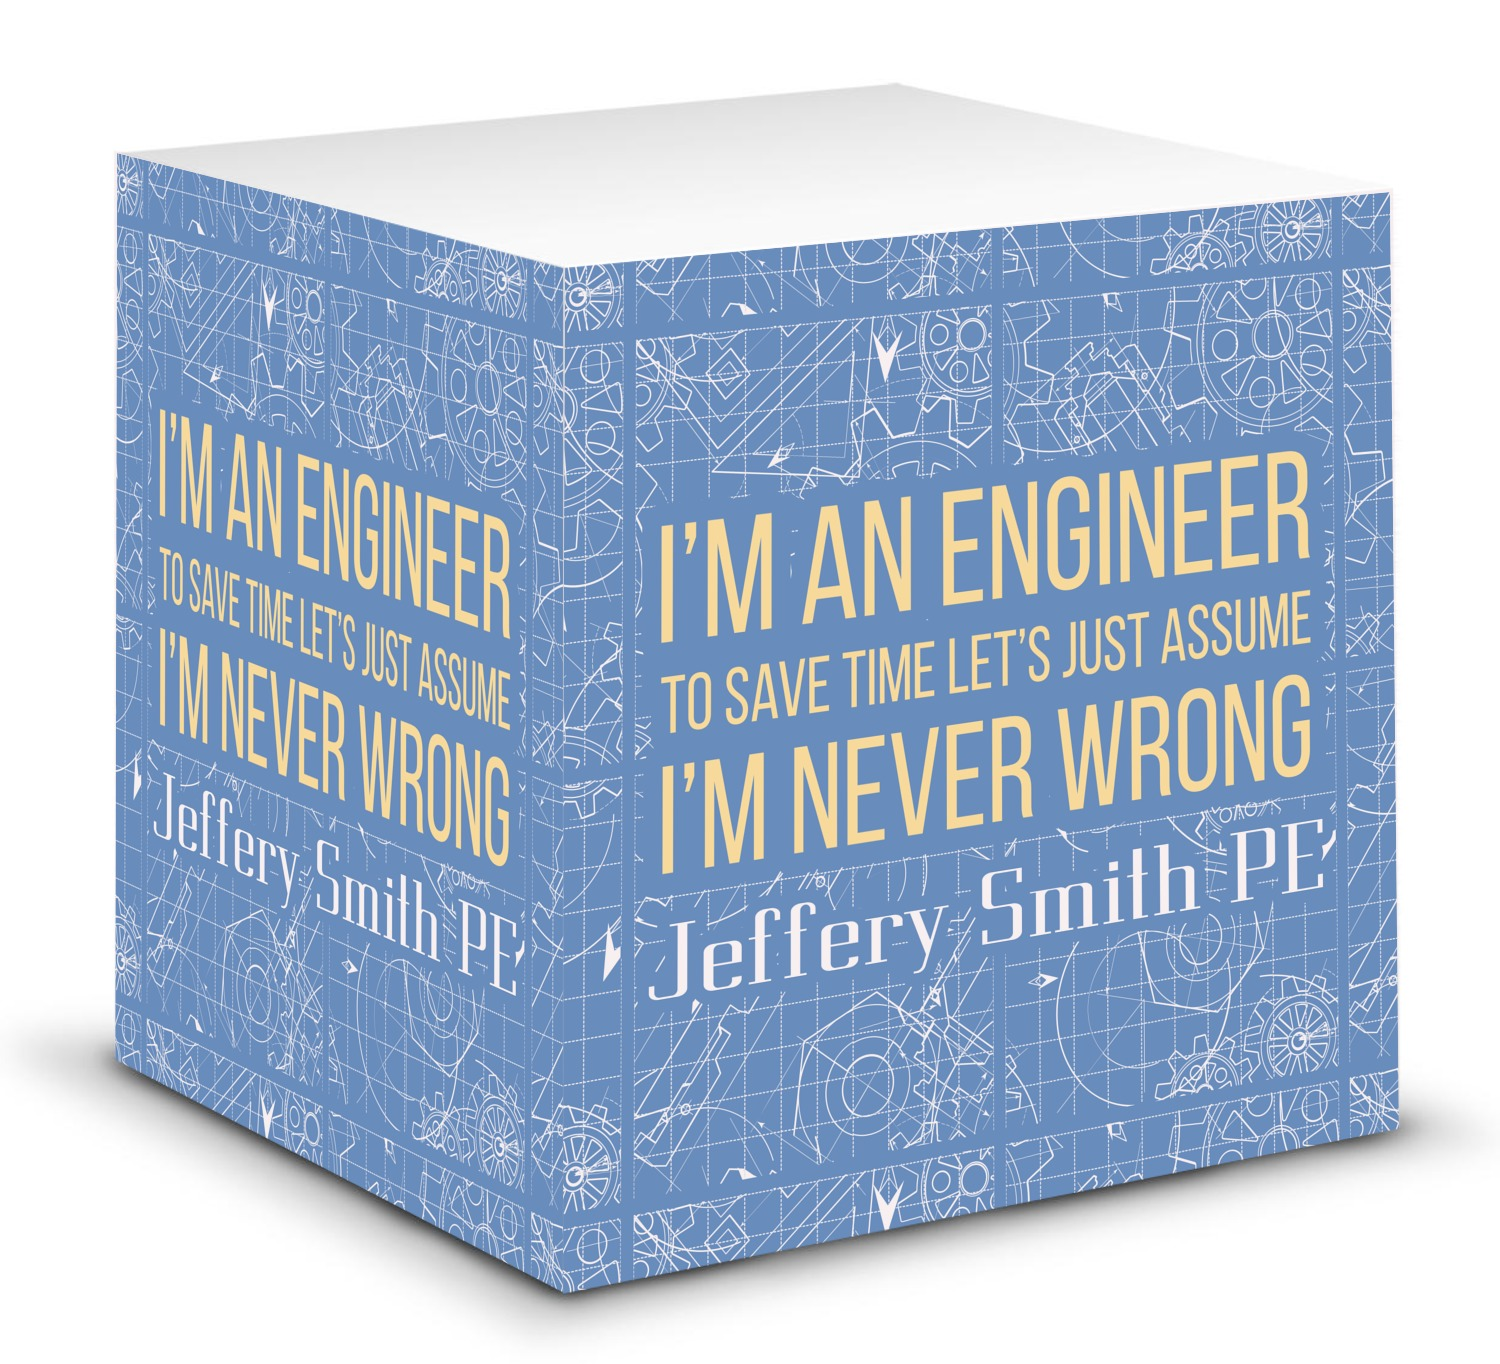 Quotes On Sticky Notes: Engineer Quotes Sticky Note Cube (Personalized